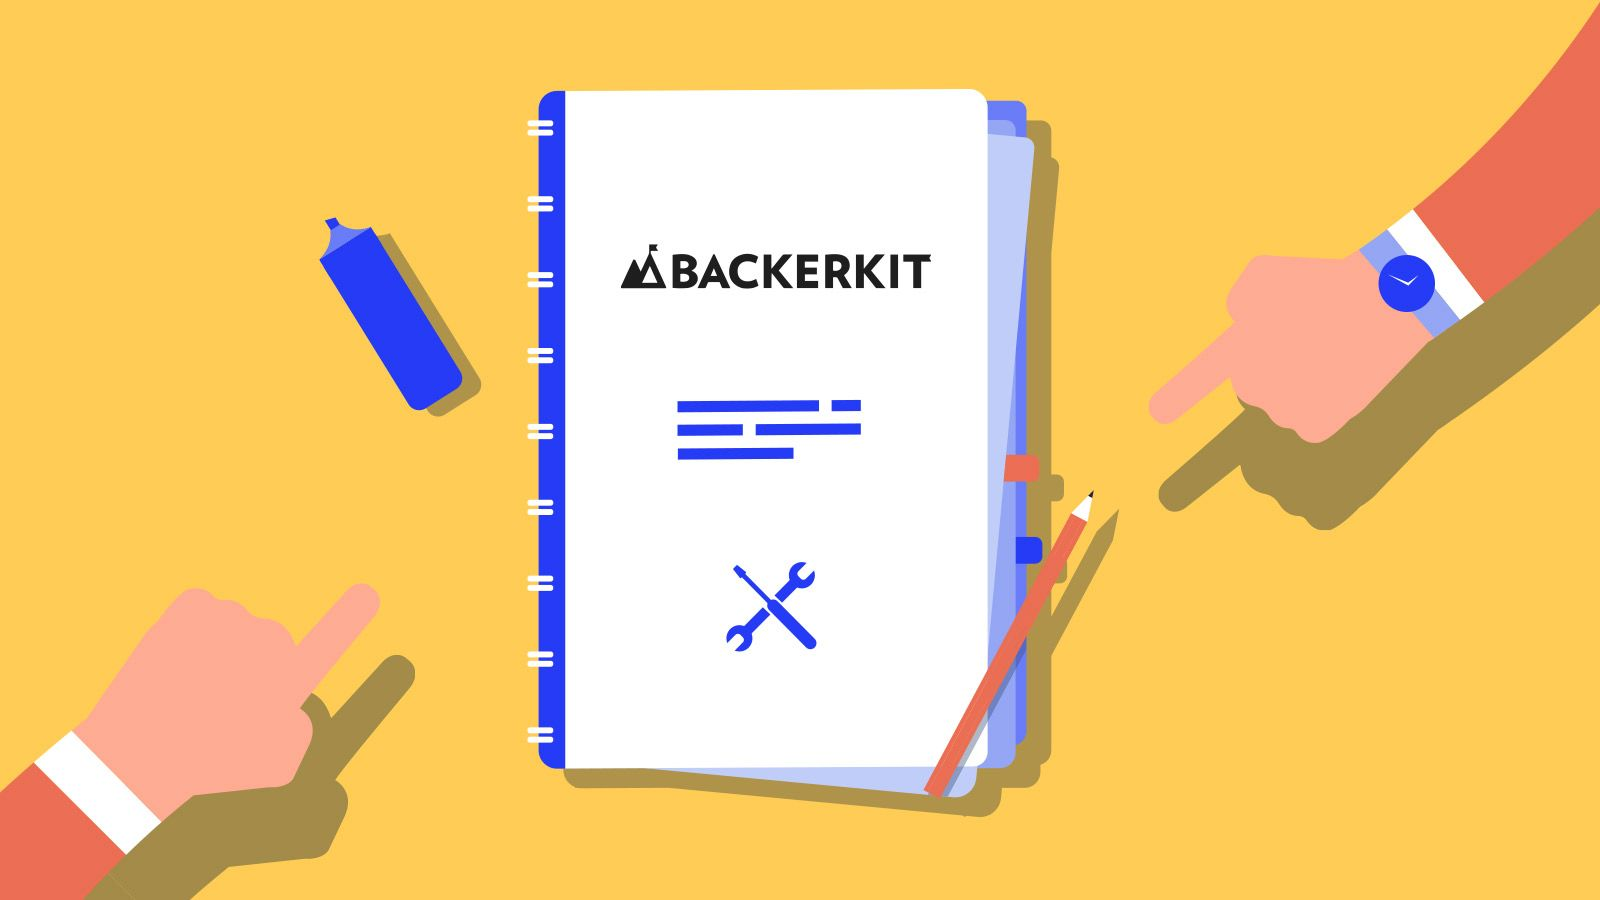 How to Use BackerKit